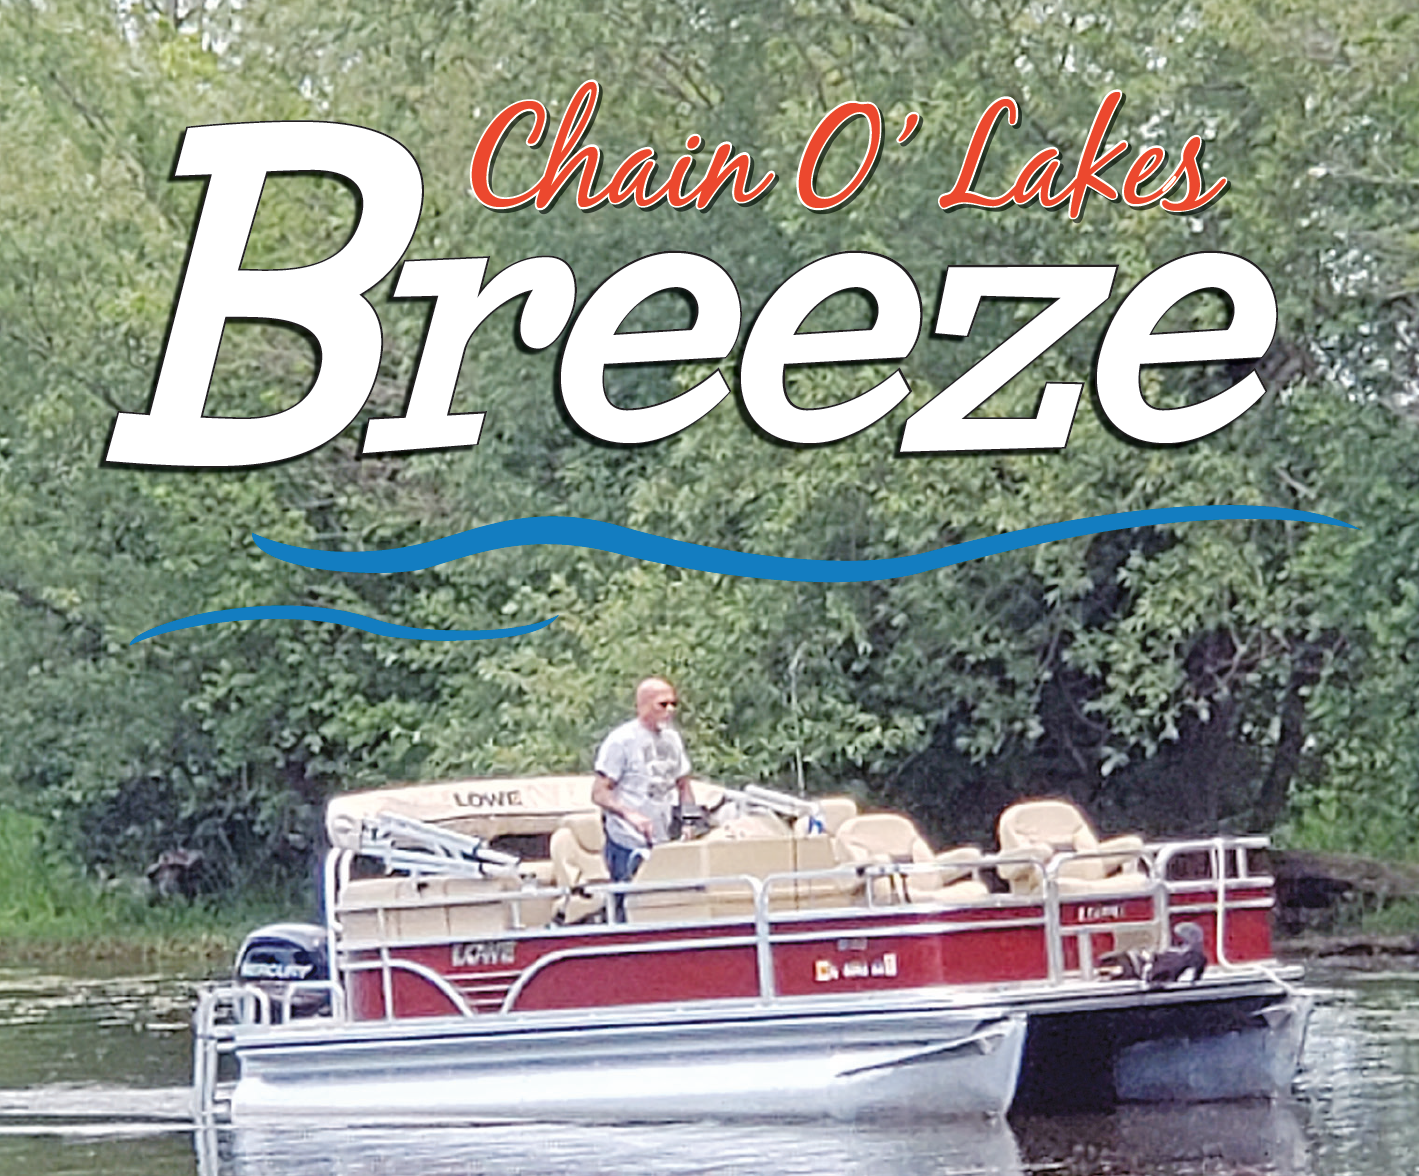 Chain of Lakes Breeze May 2020